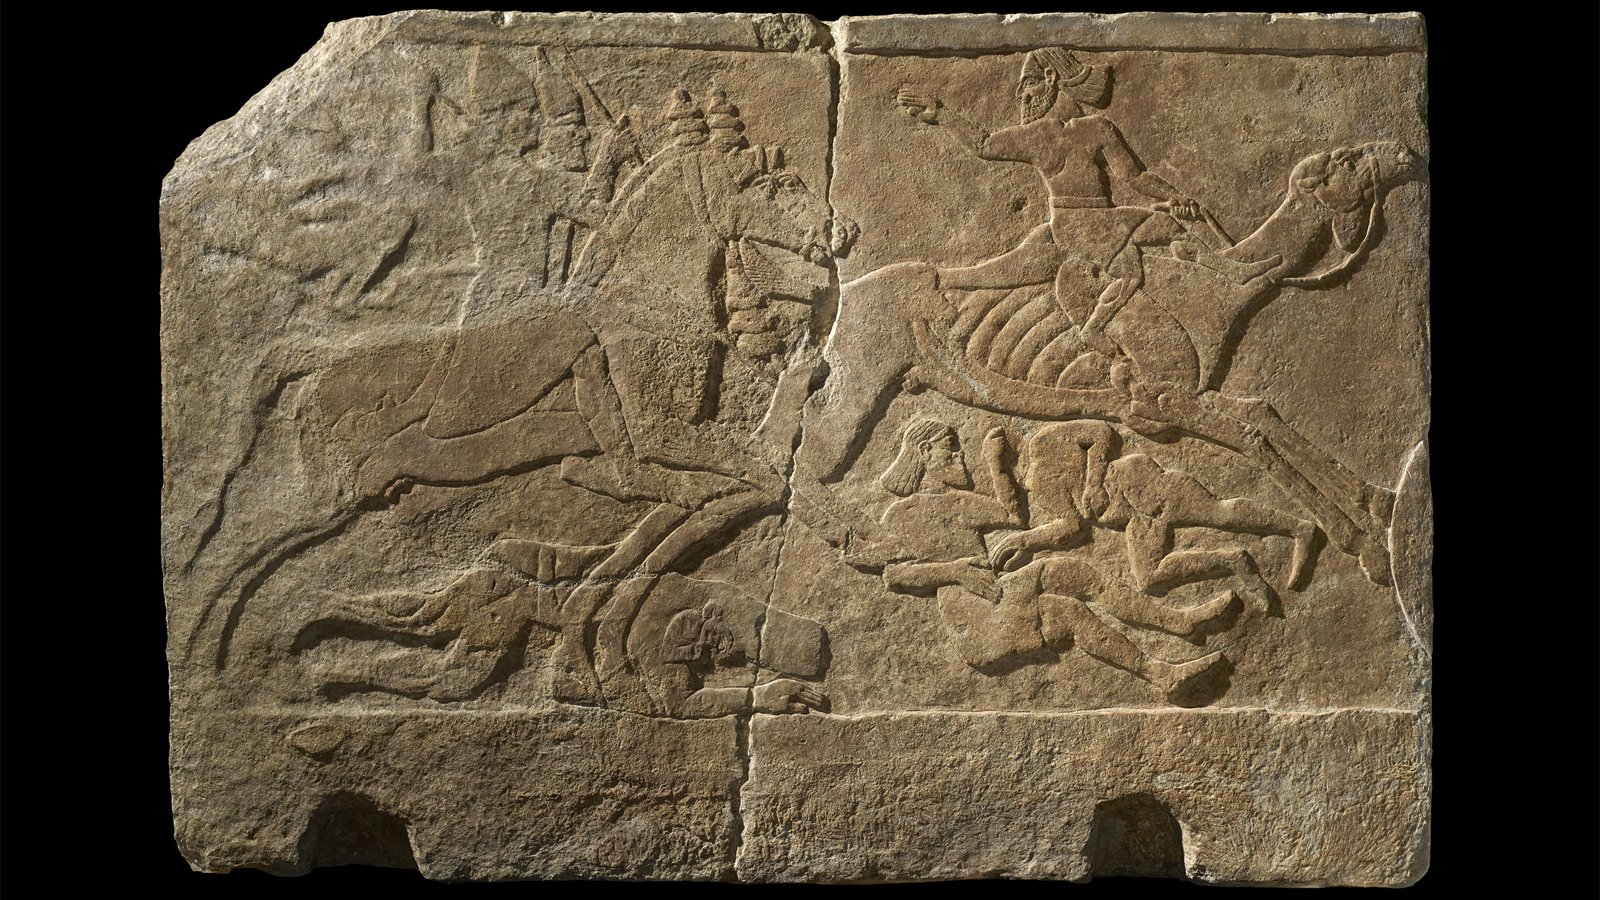 Assyria: Palace Art of Ancient Iraq